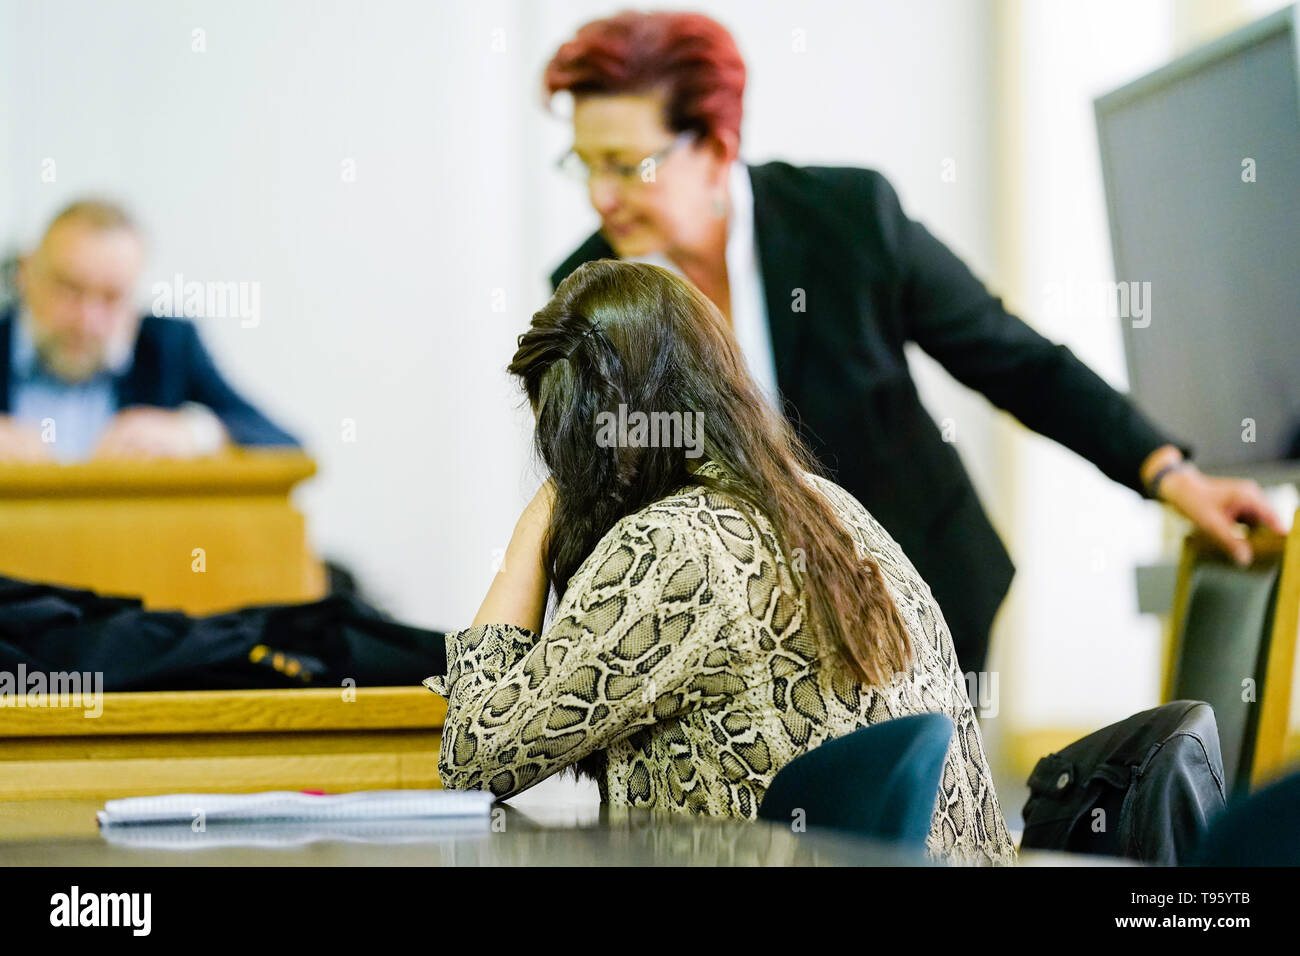 Frankenthal, Germany. 17th May, 2019. The co-plaintiff and mother of the killed baby sits in the courtroom of the District Court before Chief Public Prosecutor Doris Brehmeier-Metz. Three years after the death of a two-month-old baby, the Frankenthal Regional Court has sentenced the father to 15 years imprisonment on charges of murder, dangerous assault and hostage-taking. Credit: Uwe Anspach/dpa/Alamy Live News - Stock Image